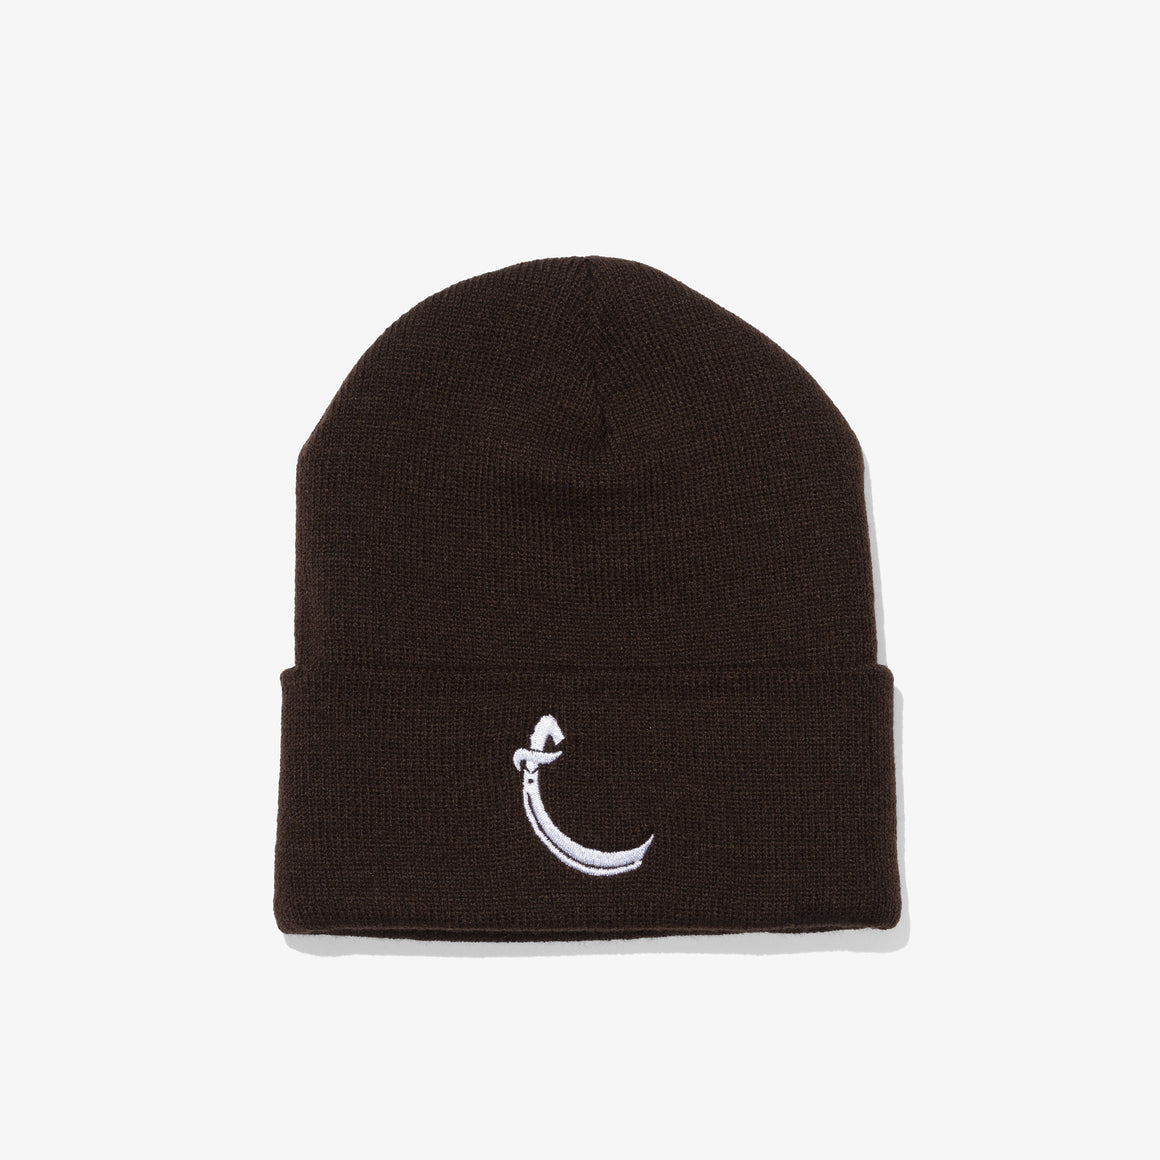 510 SWORD BEANIE (BROWN)